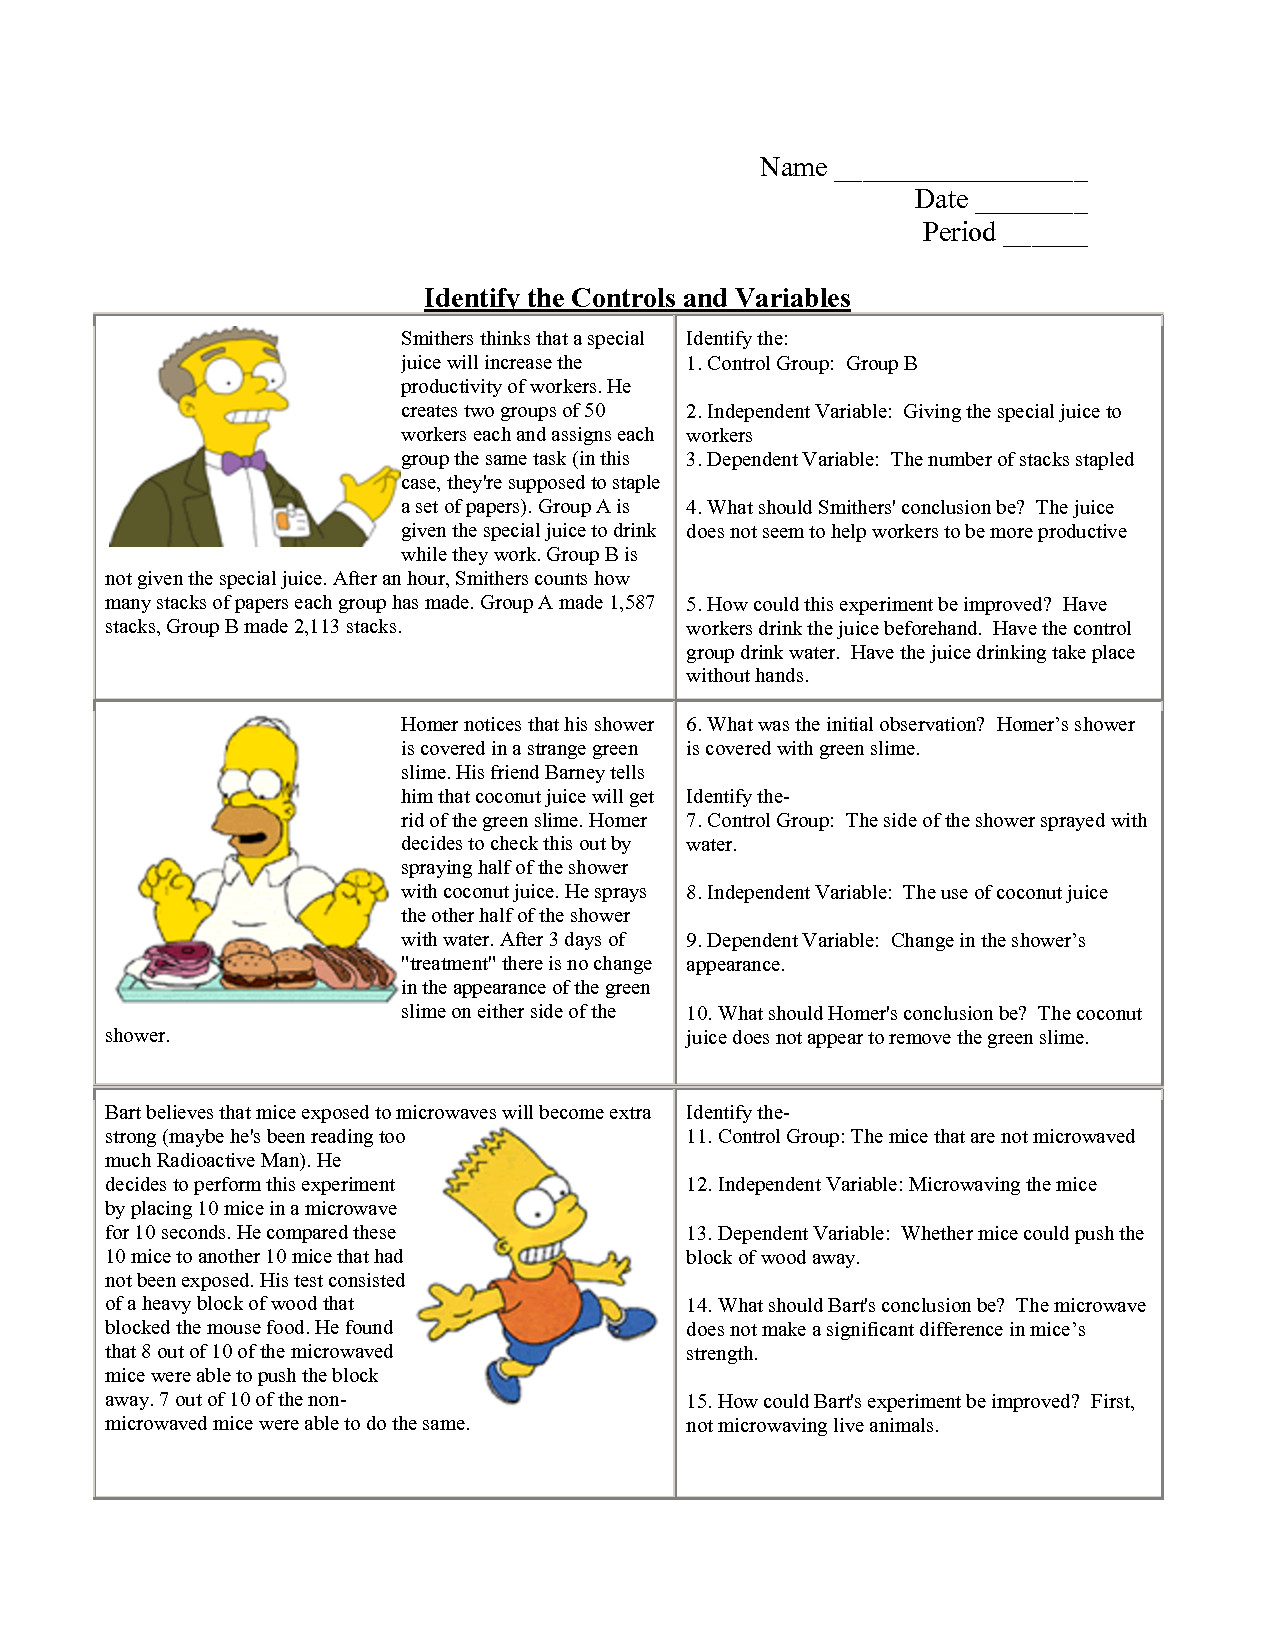 Identifying Variables Worksheet Answers Lovely the Nature Science Worksheet Answers